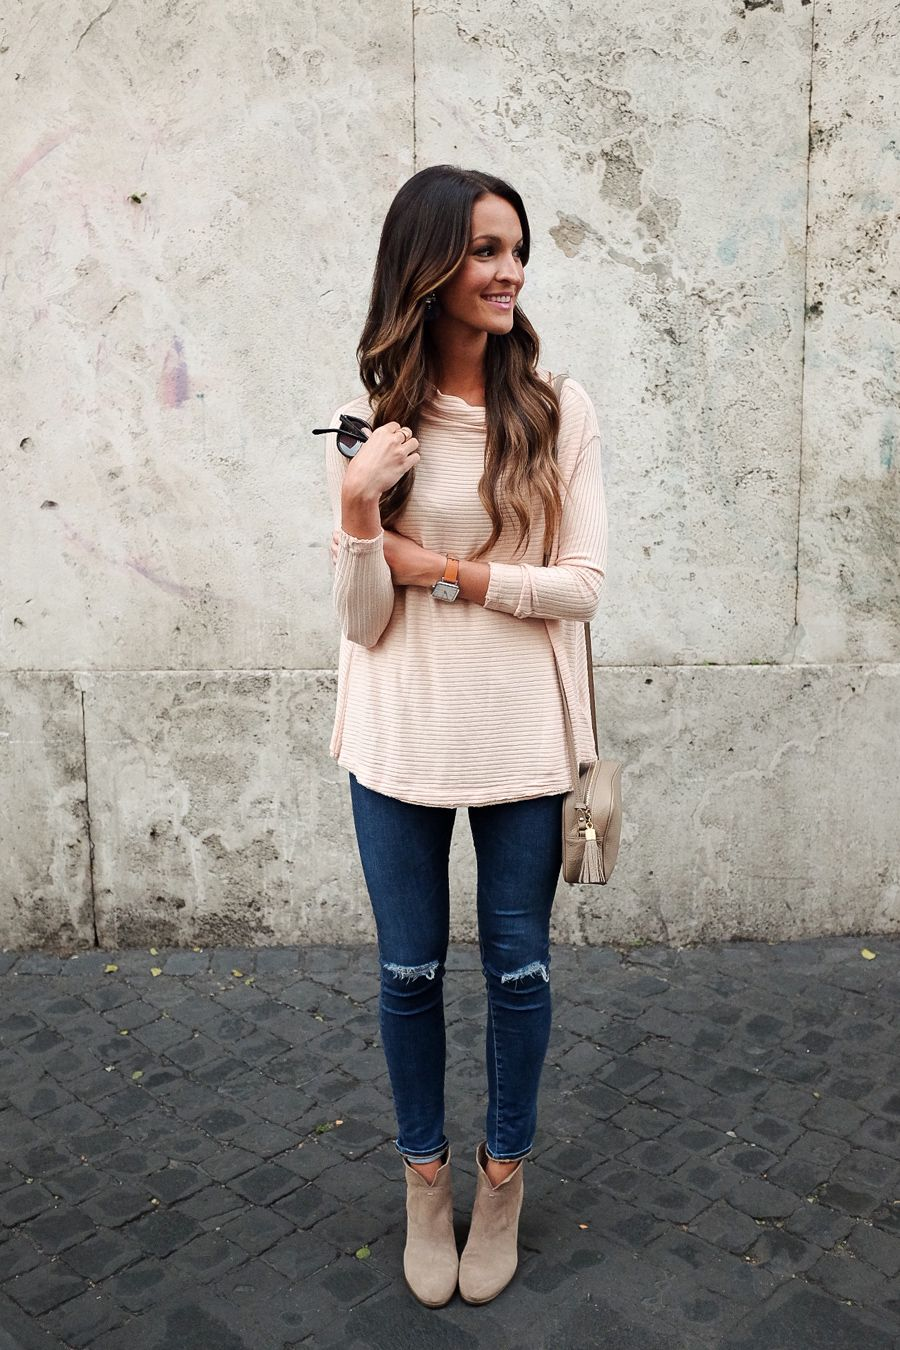 c24e03cccb0e blush pink sweater + distressed denim | OUTFITS - Women's Fashion ...